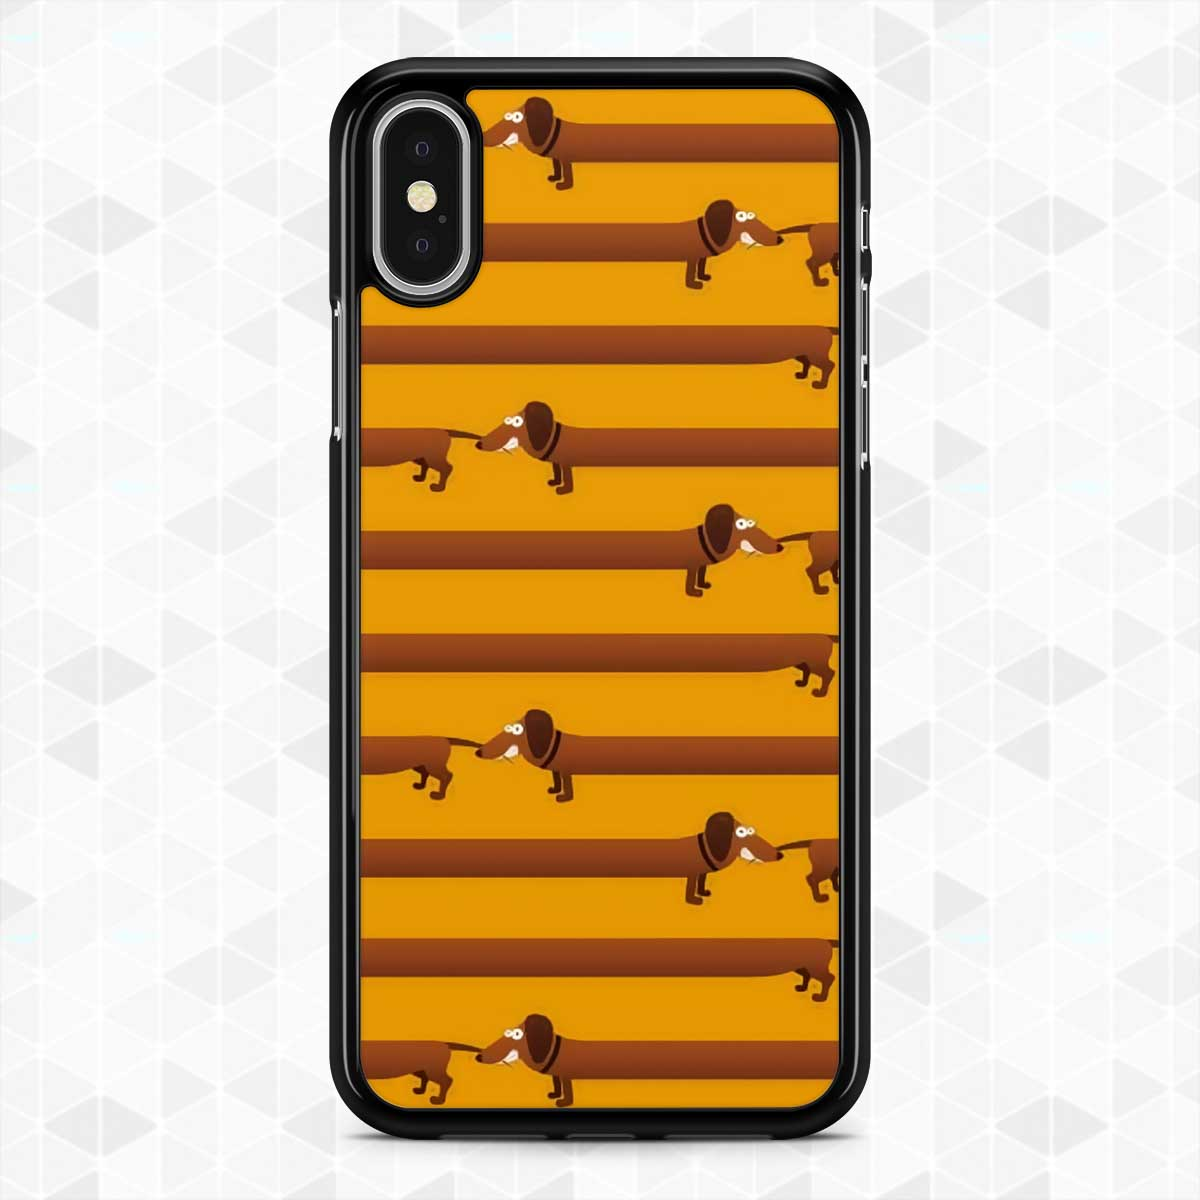 7baa748b05 Hot!Dog!Links24814296 Phone Case iPhone XS Max X 8 Plus 7+ XR 6s+ Case  Samsung S9+ S9 S8+ S8 Note 9 8 5 Cases on Storenvy